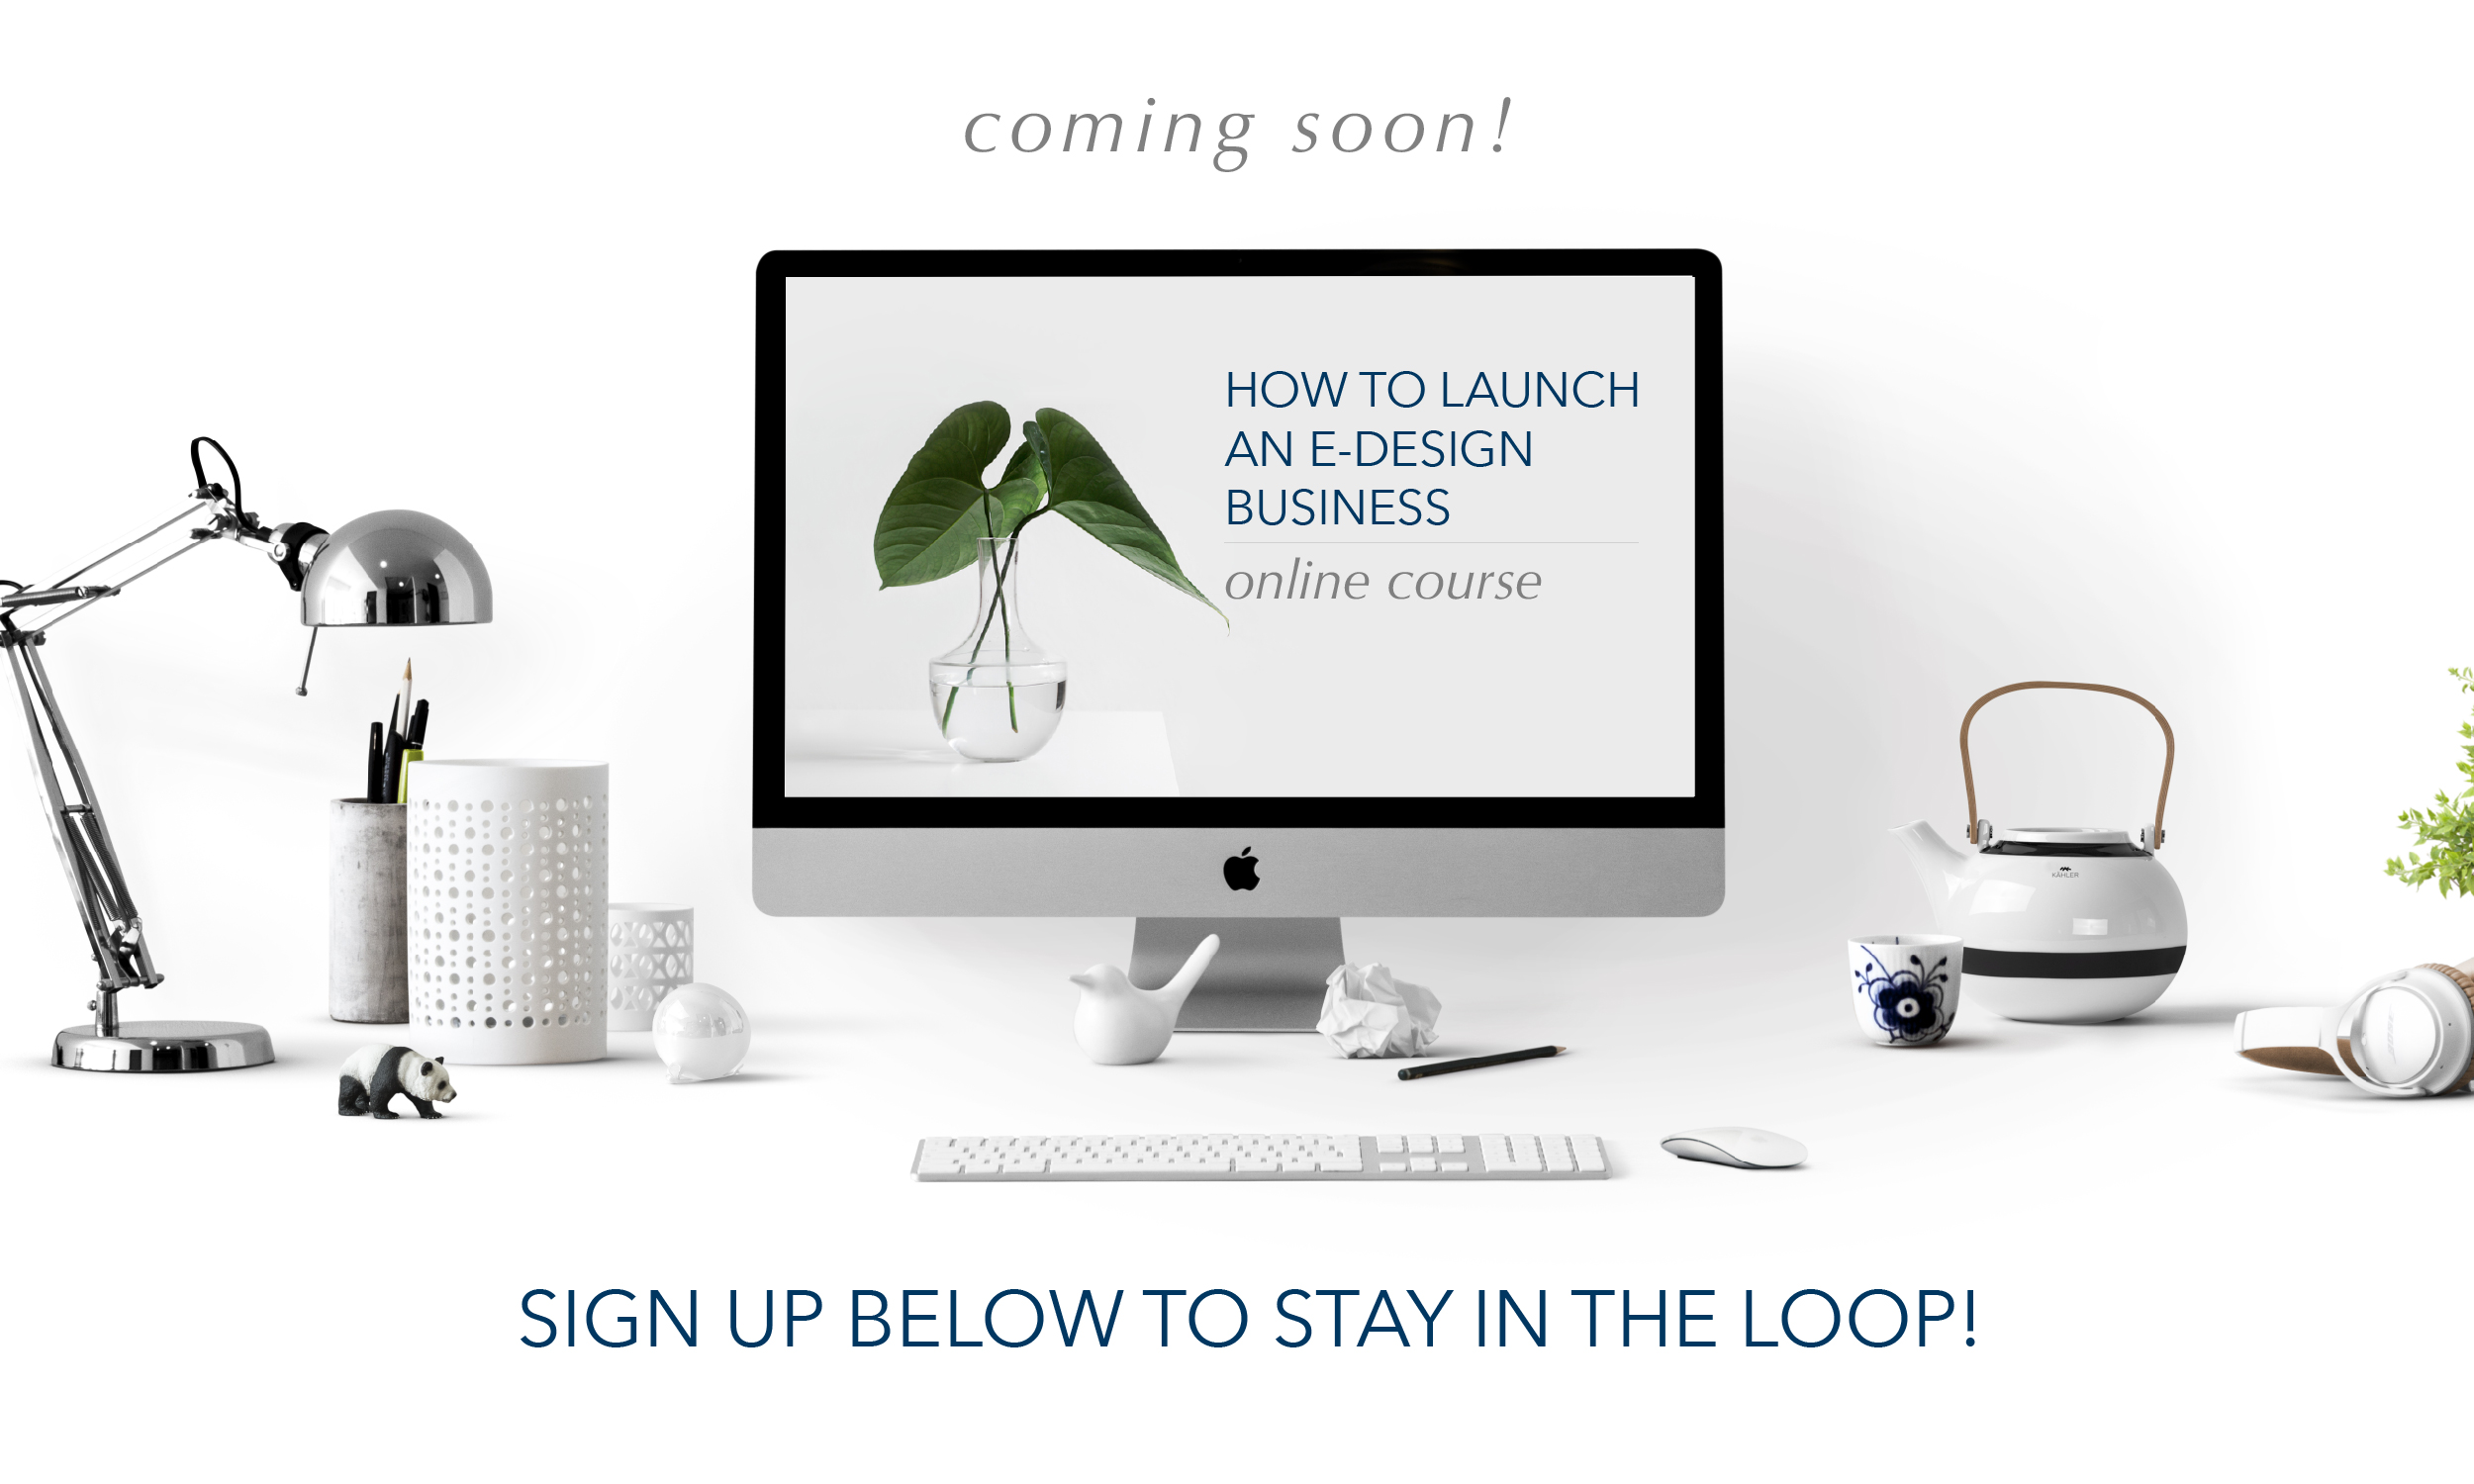 Email-Signup-How-To-Launch-An-E-Design-Business-Course.jpg